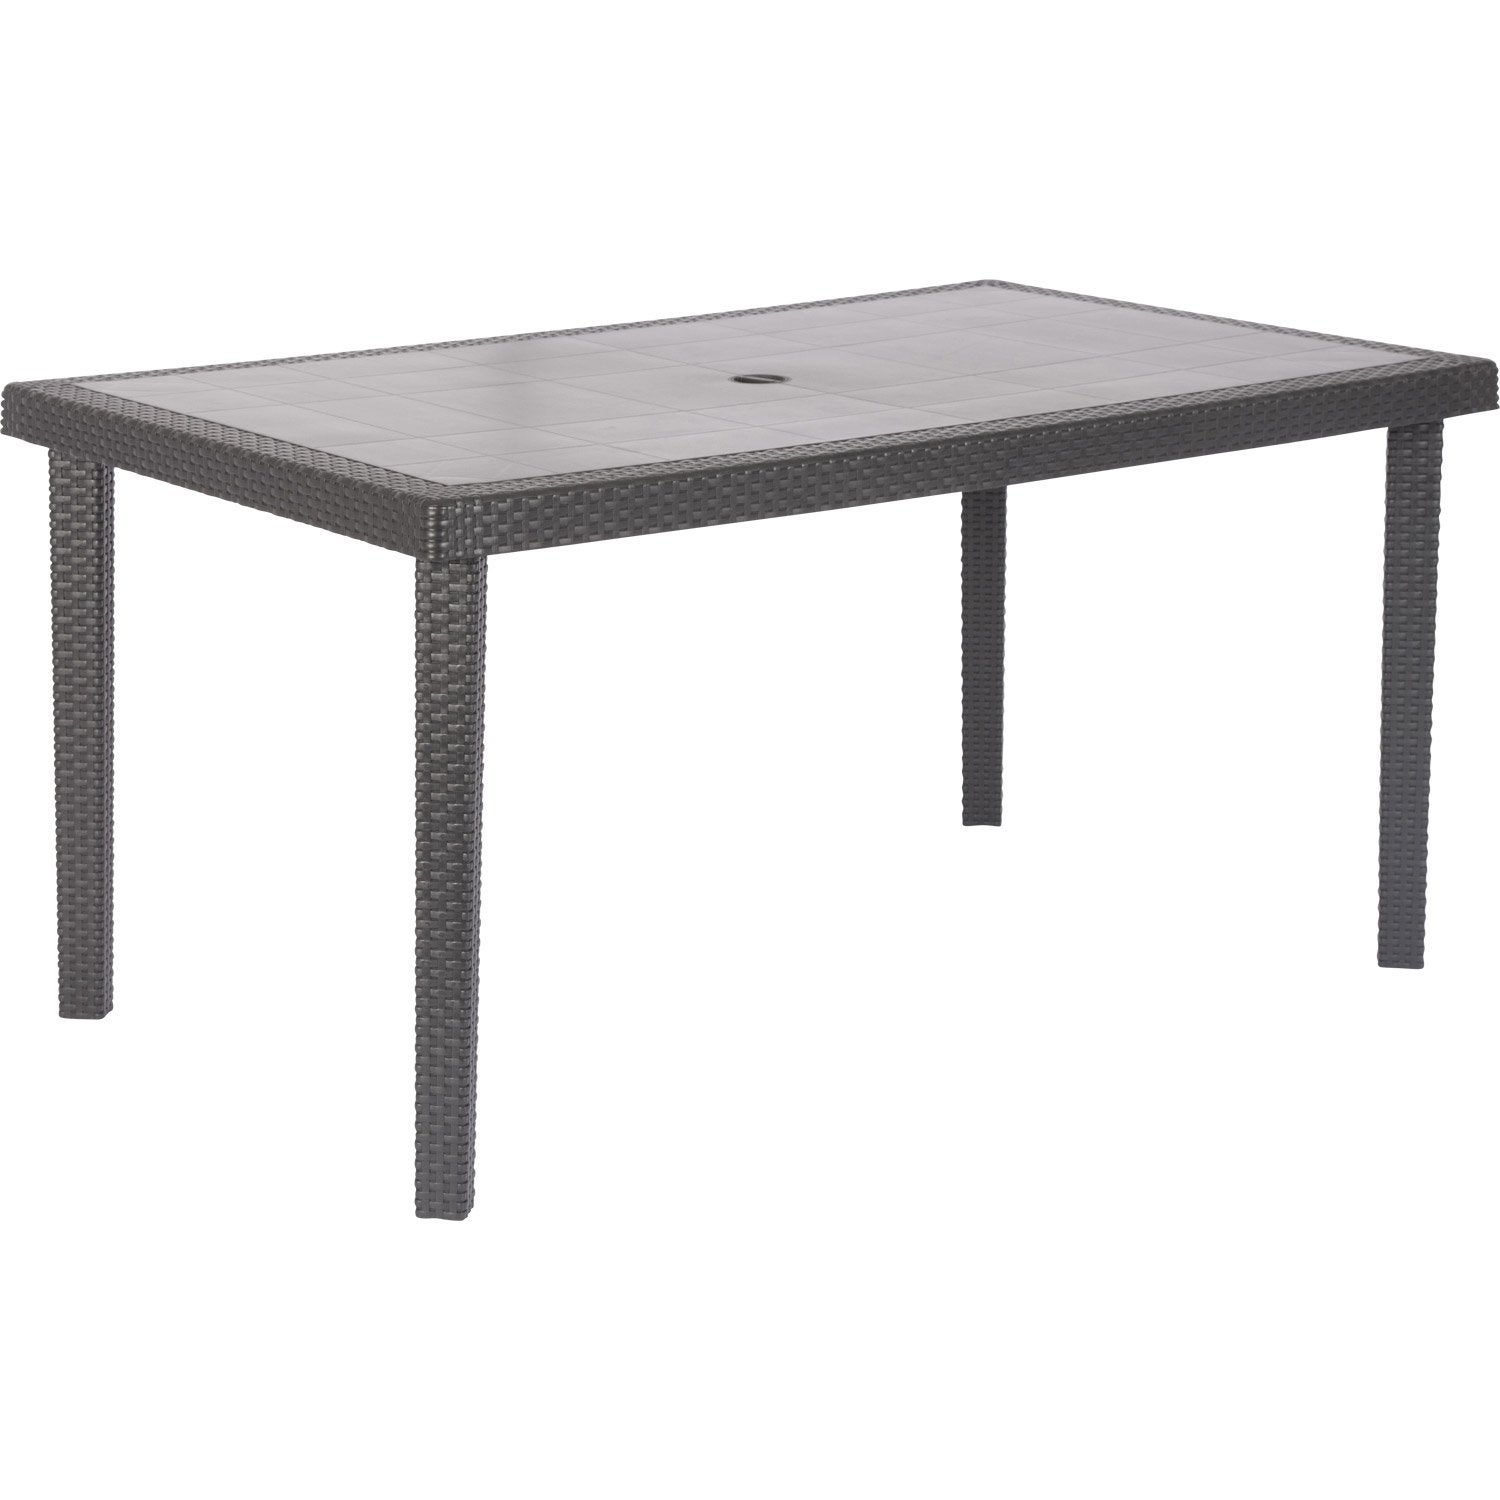 Table de jardin boh me rectangulaire anthracite 6 personnes leroy merlin - Leroy merlin sombrillas de jardin ...